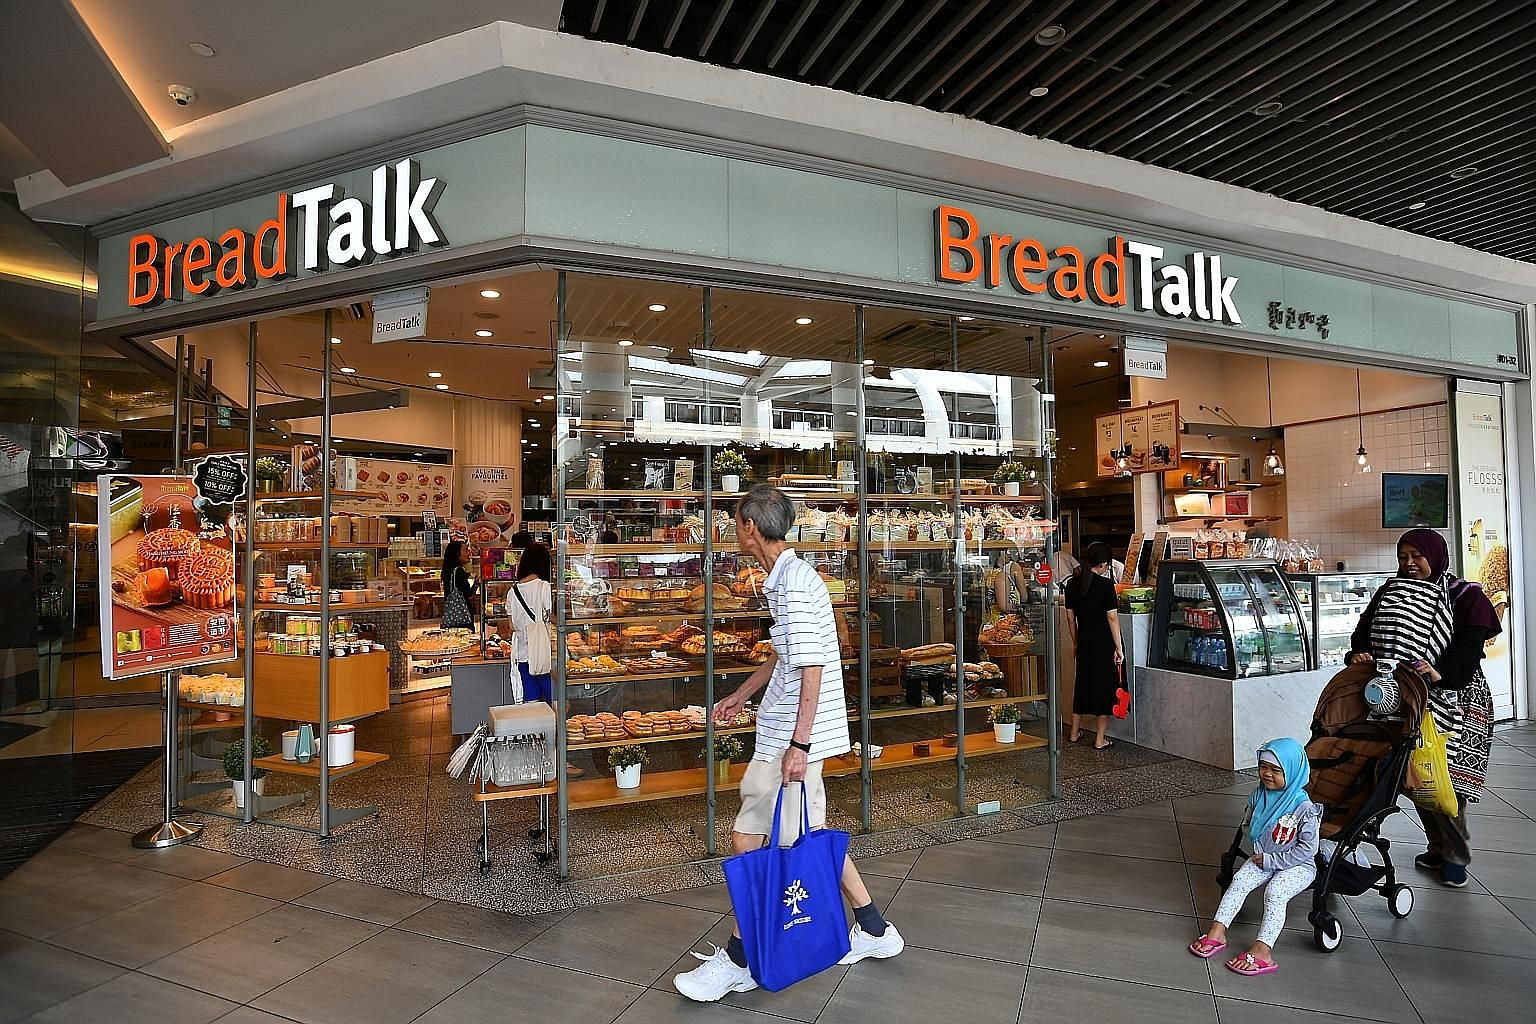 BreadTalk Group chairman and founder George Quek has recently taken on major roles in the business after a series of resignations at the top rungs of BreadTalk, including overseeing the group's accounting, financial, treasury and tax matters with the